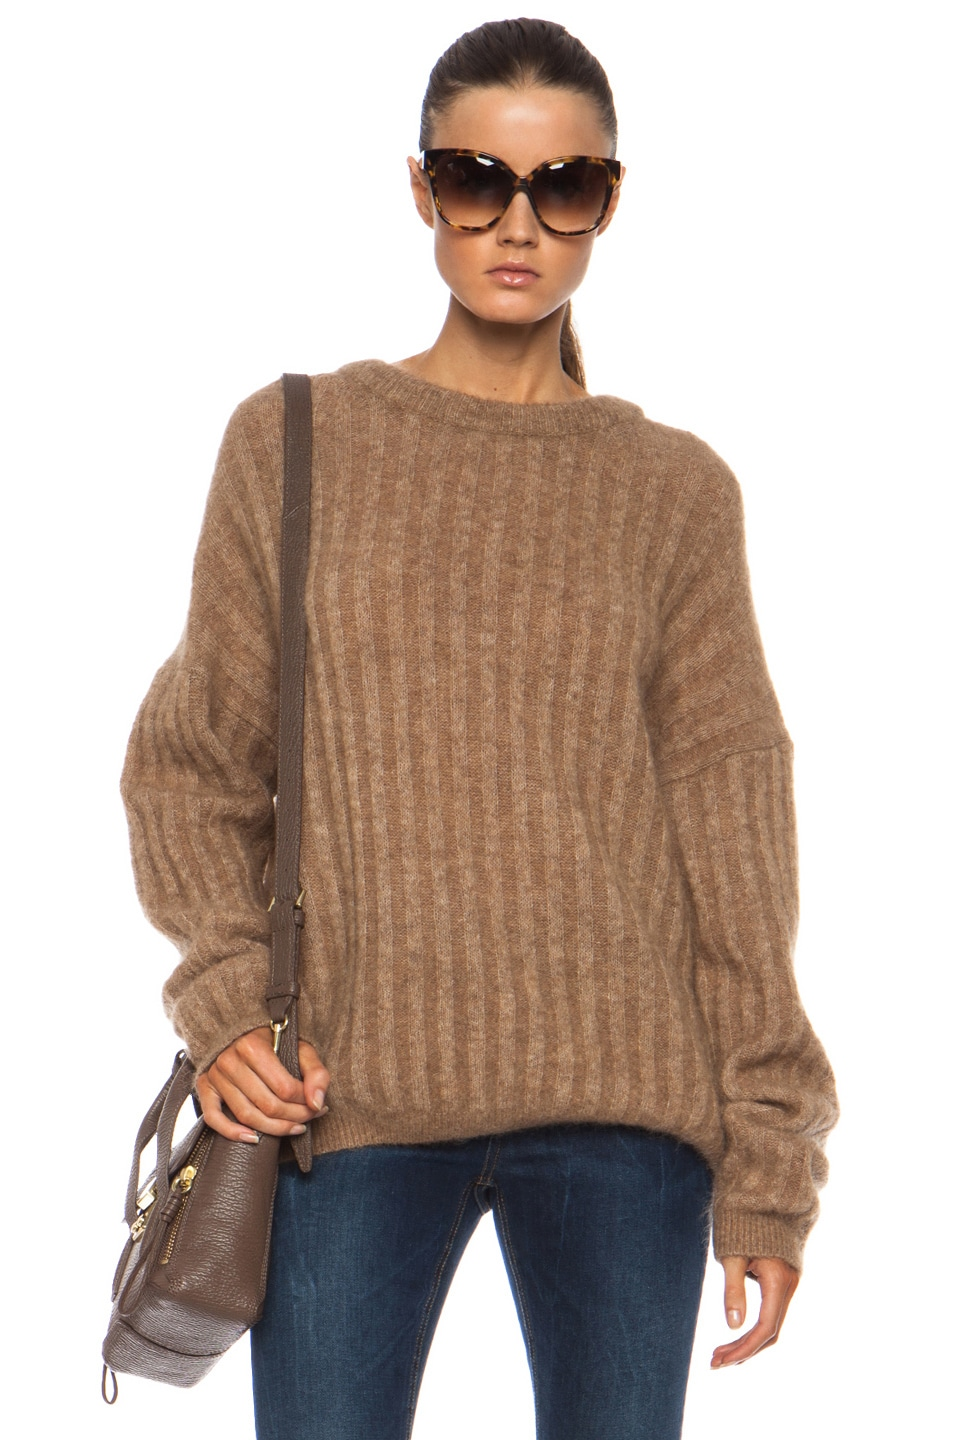 acne studios dramatic mohair blend sweater in camel fwrd. Black Bedroom Furniture Sets. Home Design Ideas